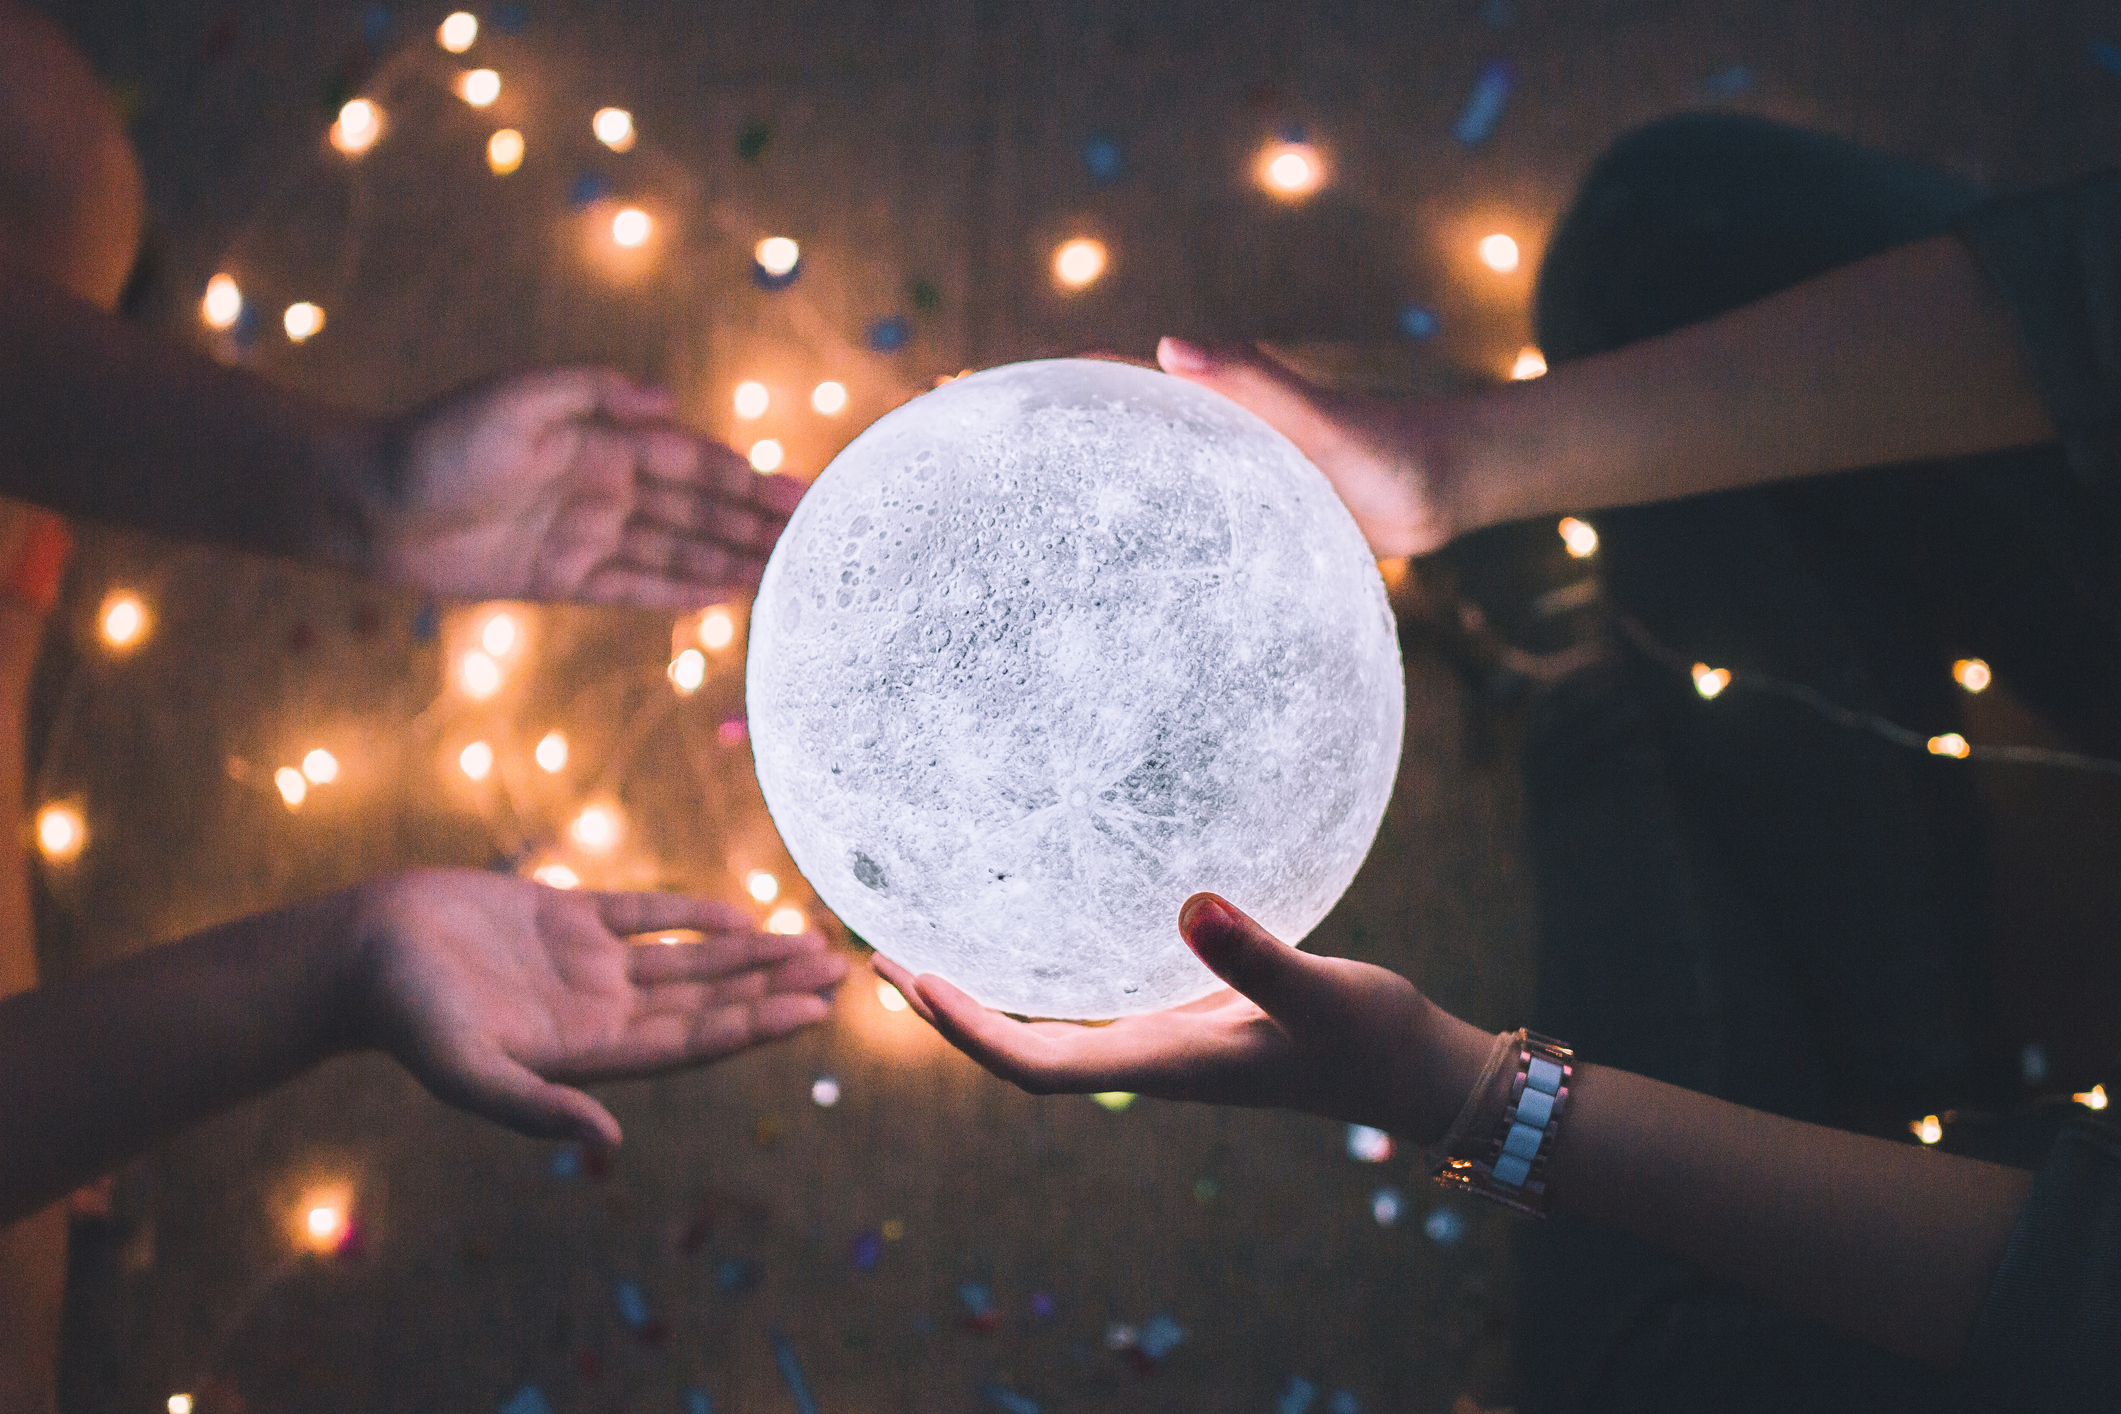 The Lunar Calendar and How Moon Phases Work